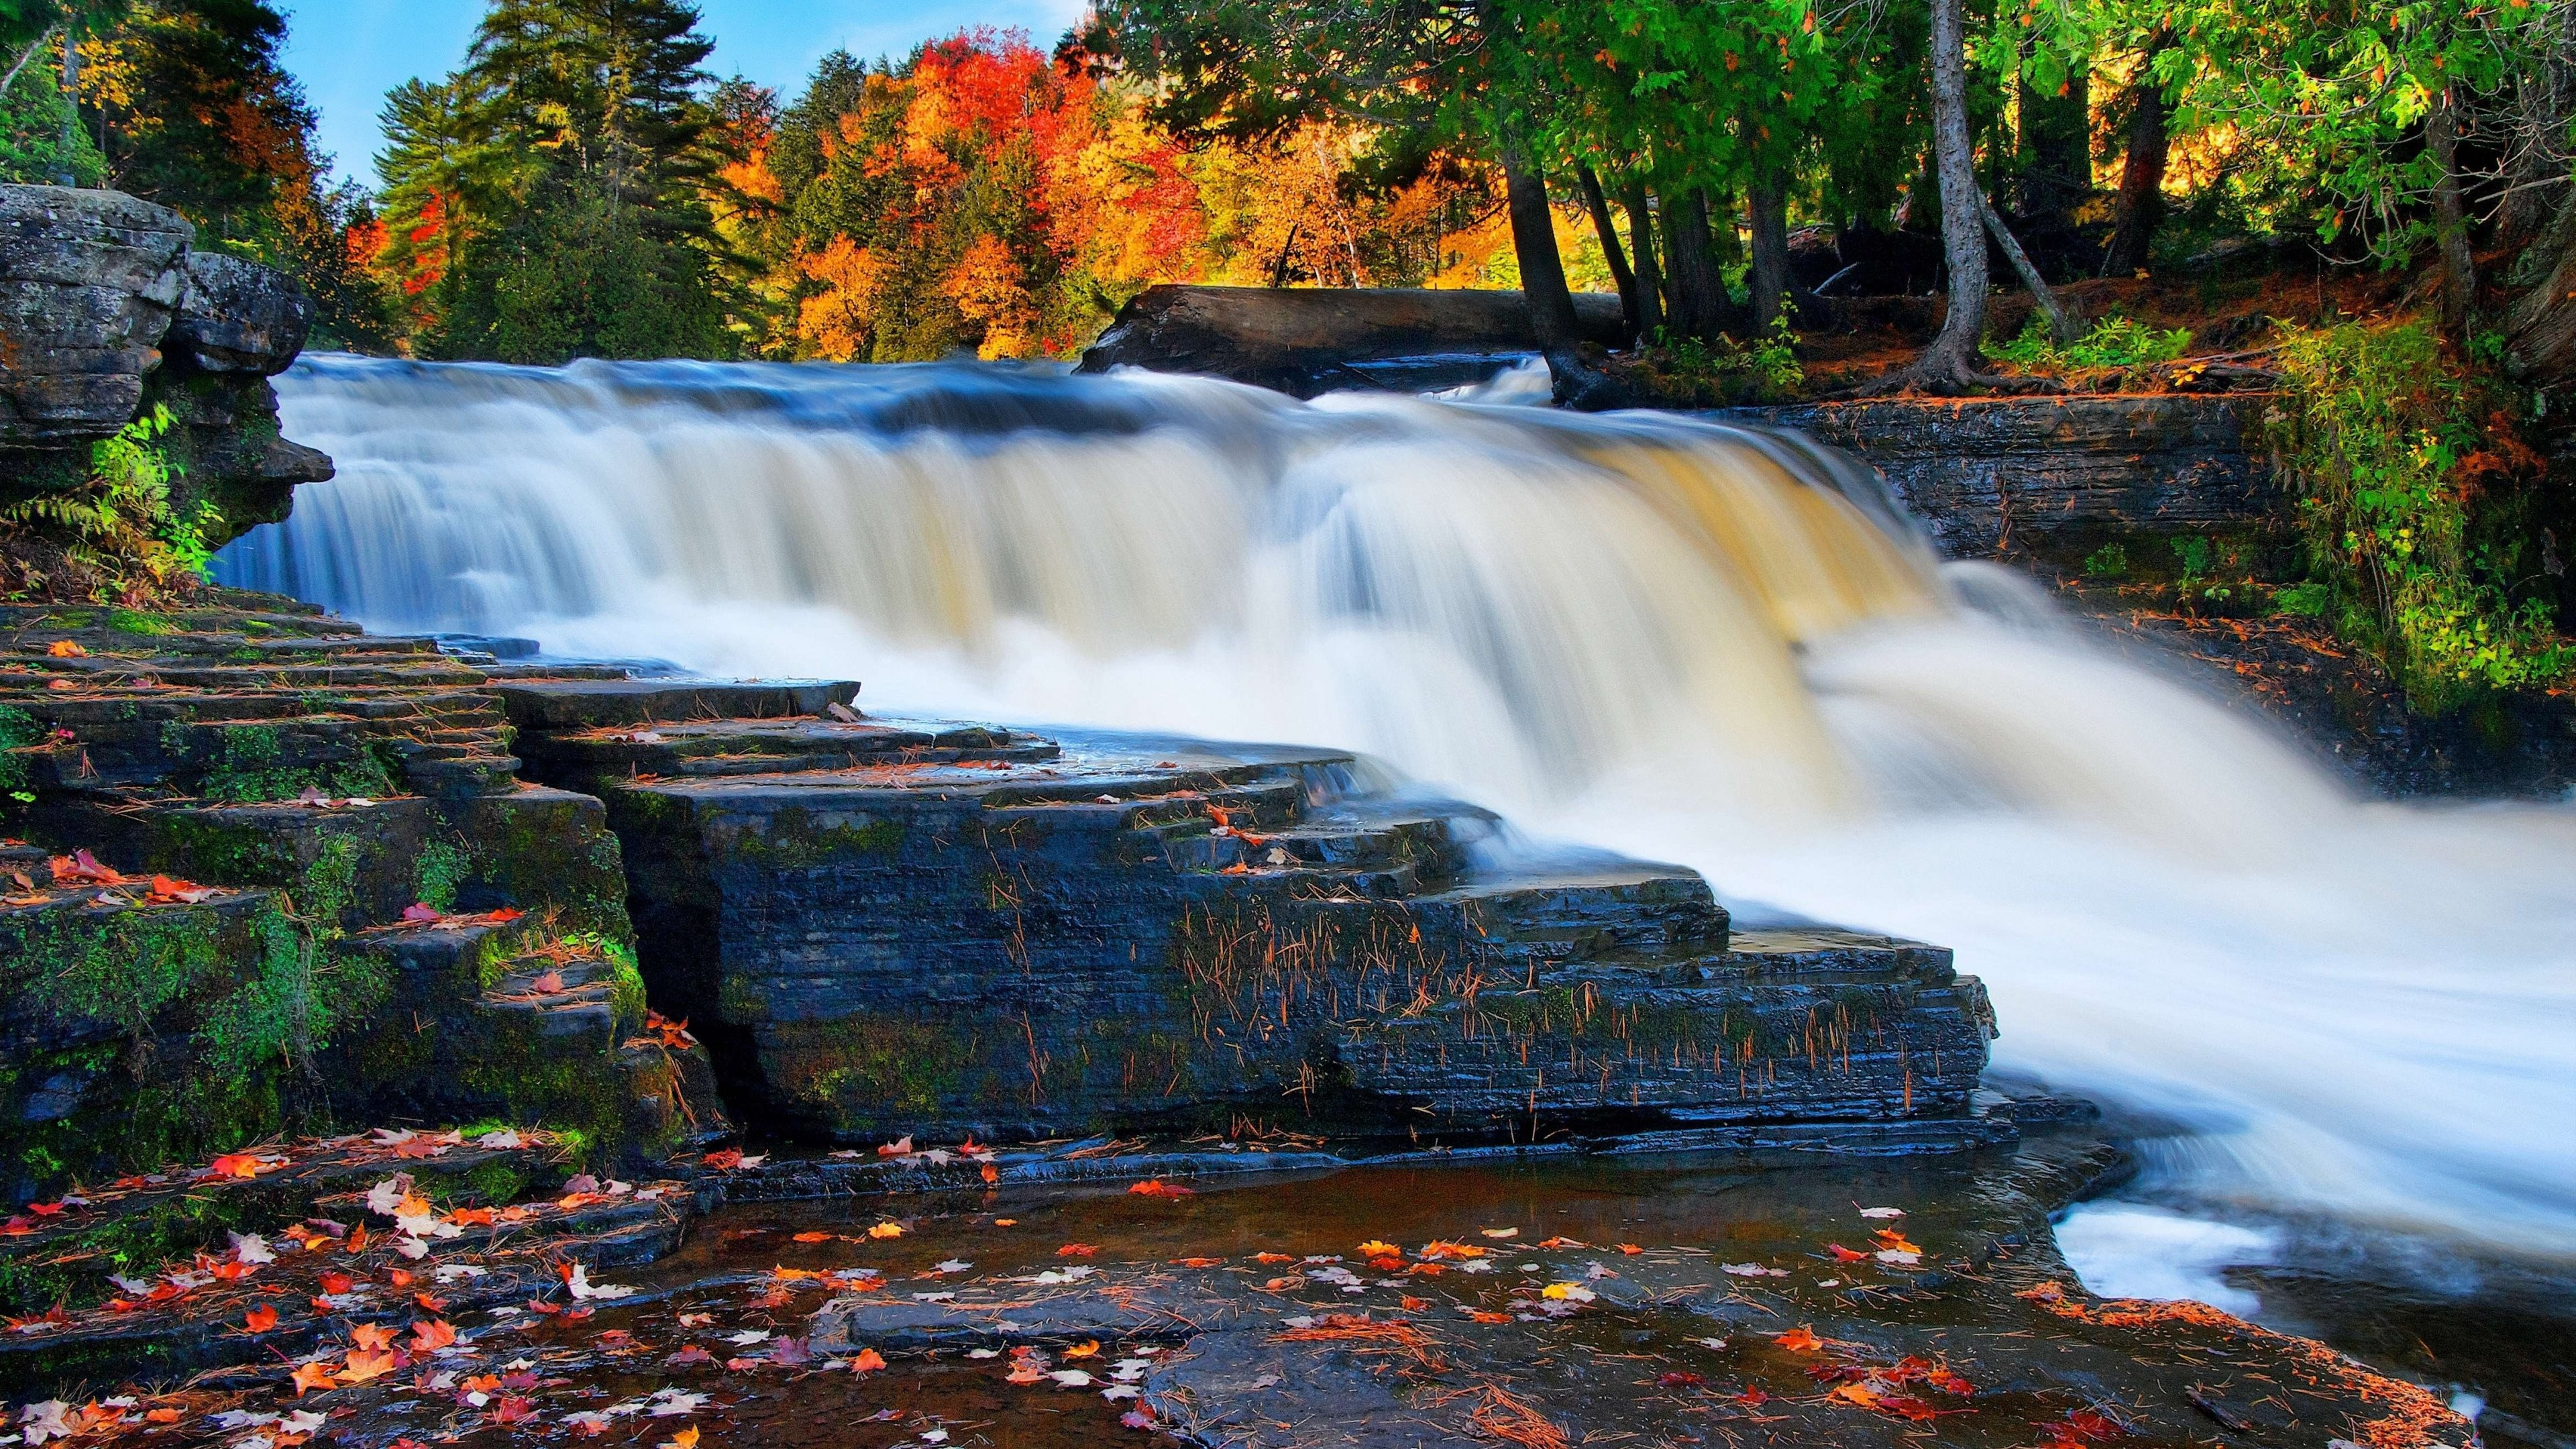 Wallpaper Forest 5k 4k River Waterfall Autumn Nature